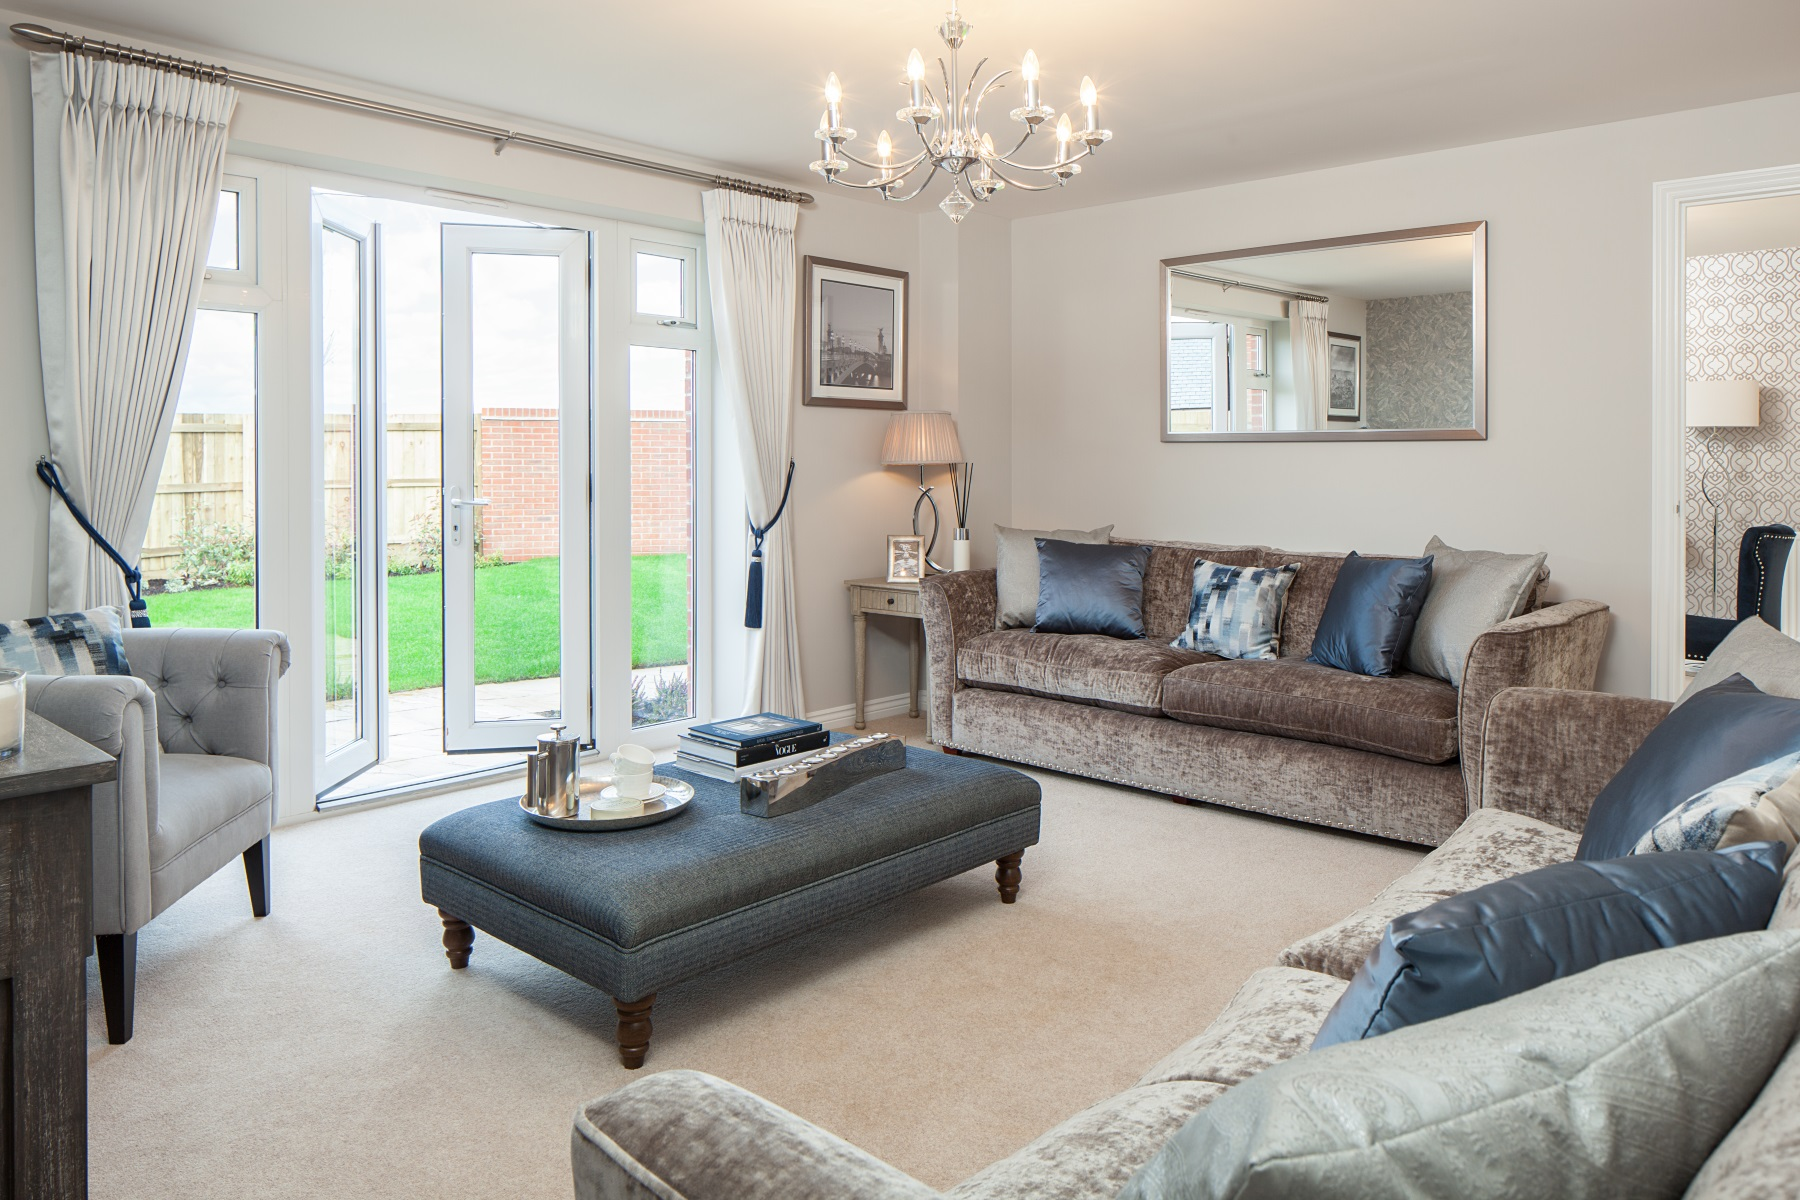 Cornflowers at Cranbrook Thornford example living room